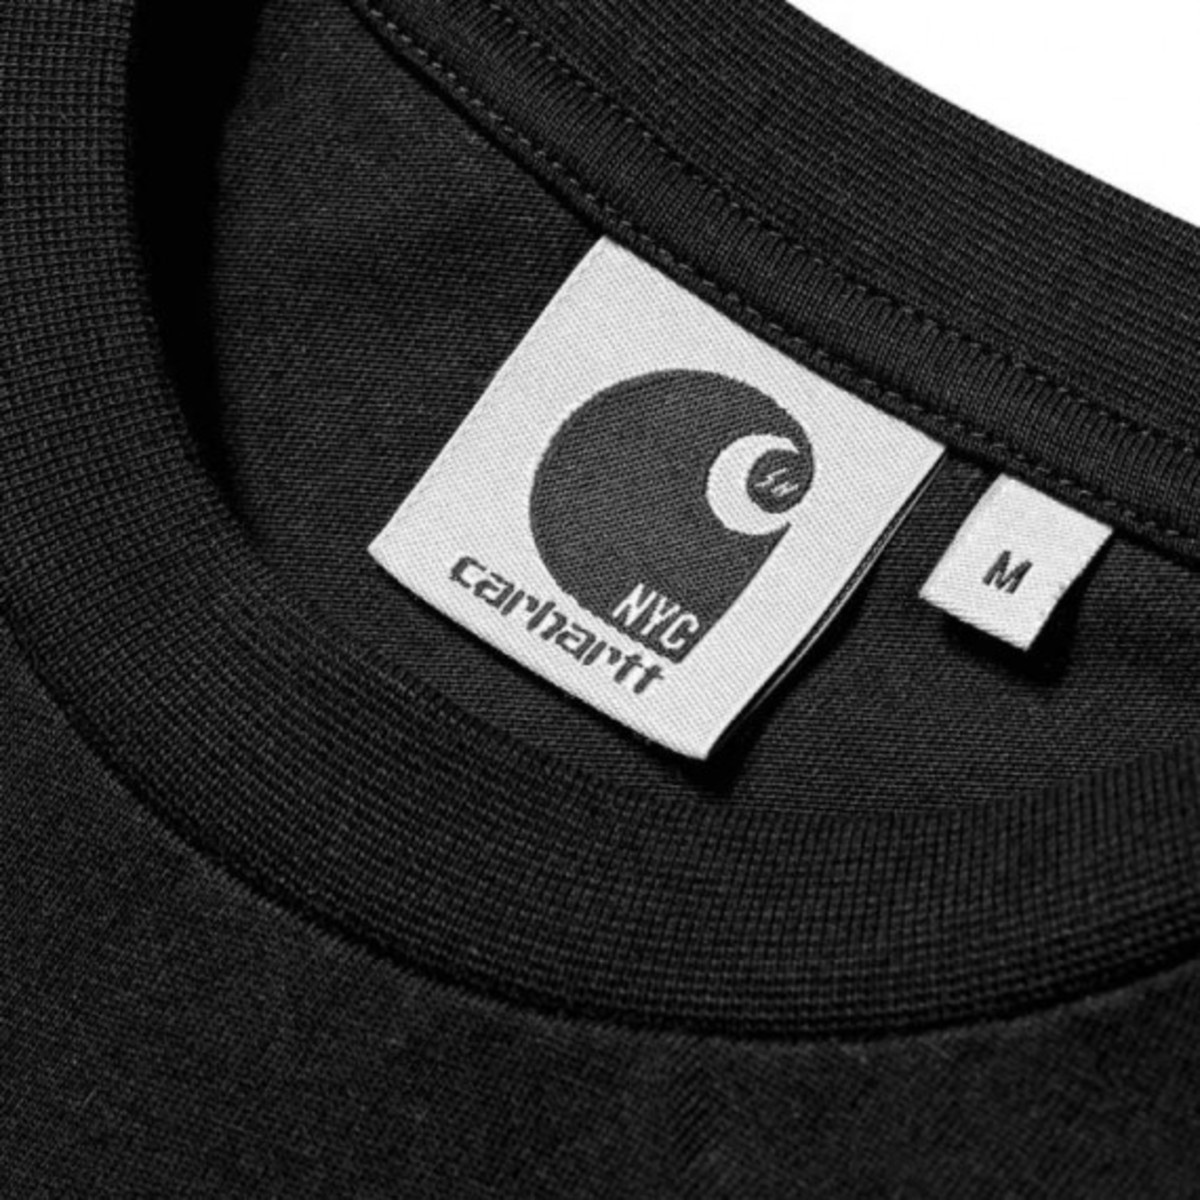 carhartt-wip-fragment-design-nyc-11